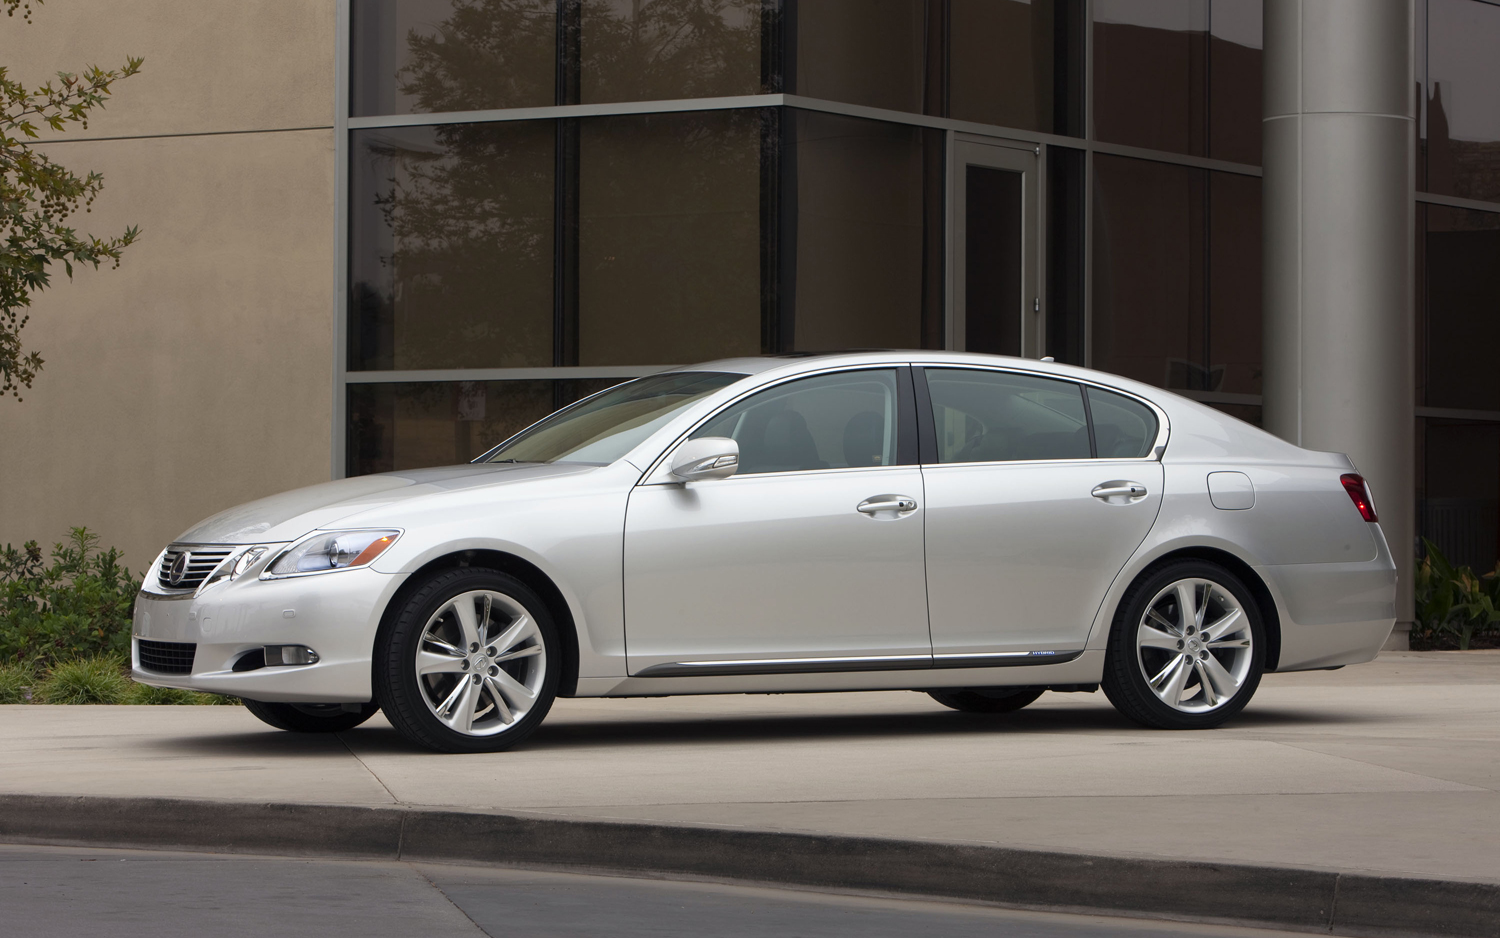 Lexus GS 450h 2011 photo - 1